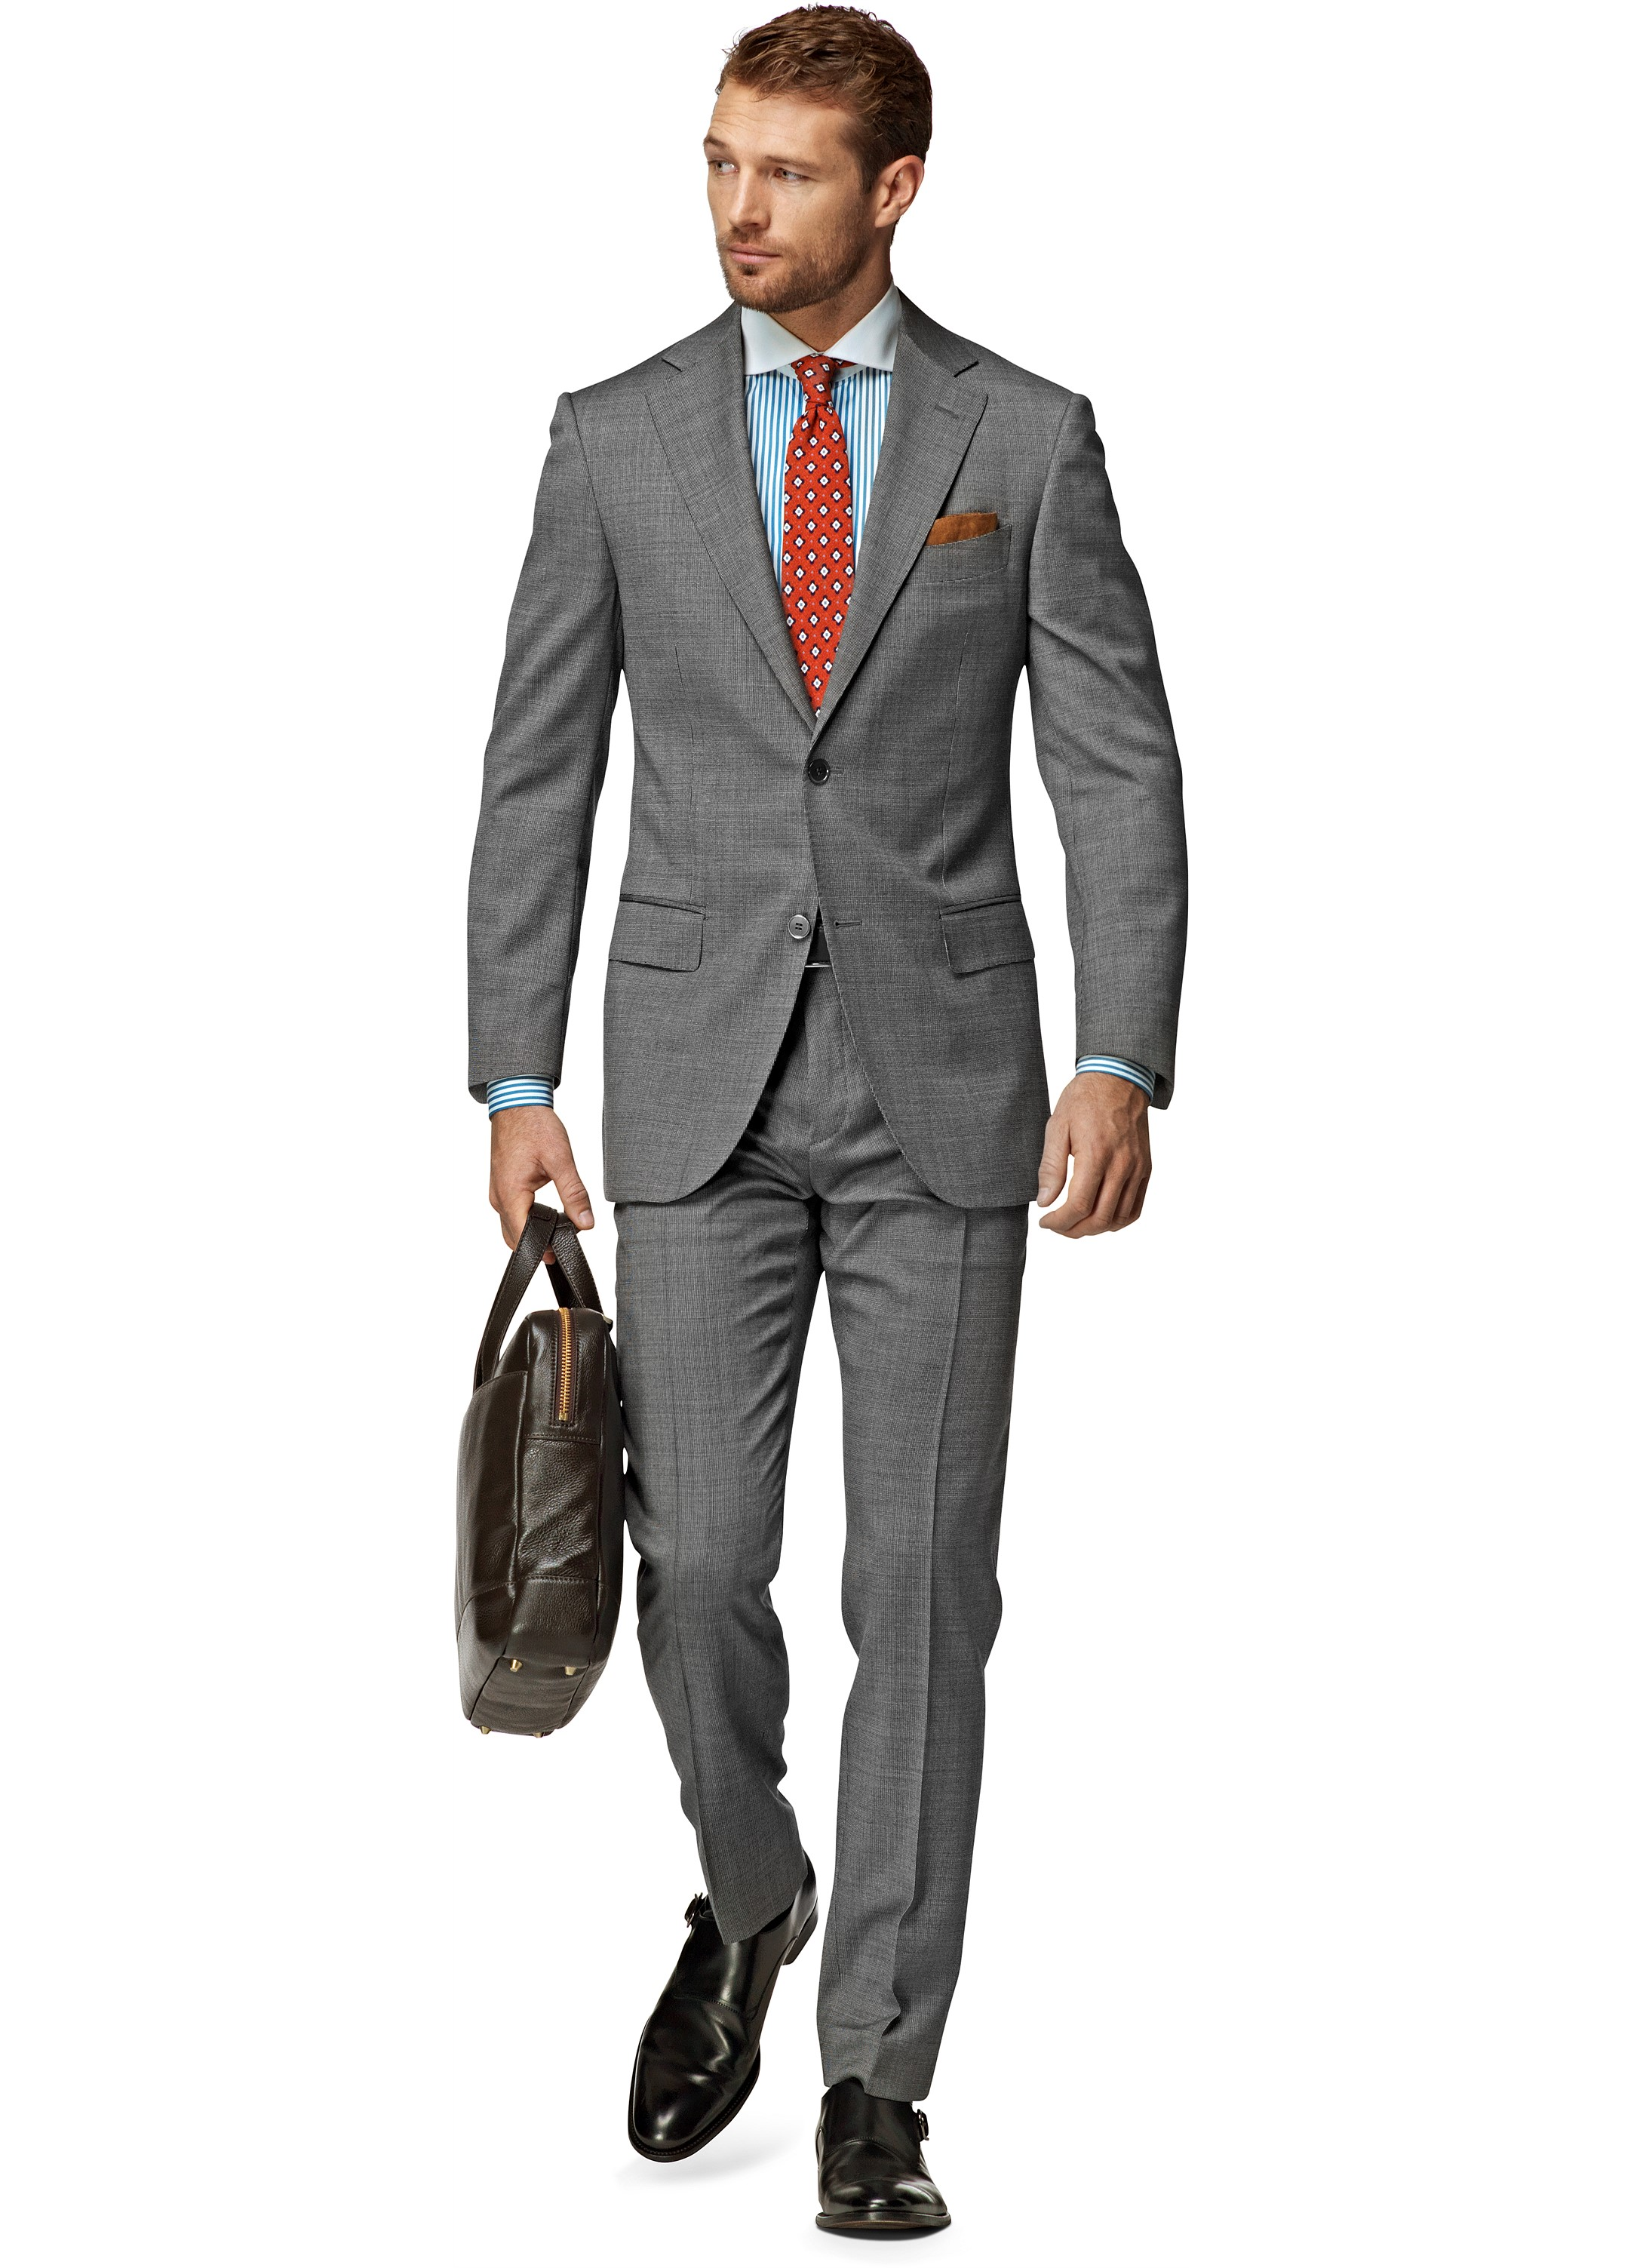 http://statics.suitsupply.com/images/products/Suits/zoom/Suits_Grey_Plain_Napoli_P3752_Suitsupply_Online_Store_1.jpg